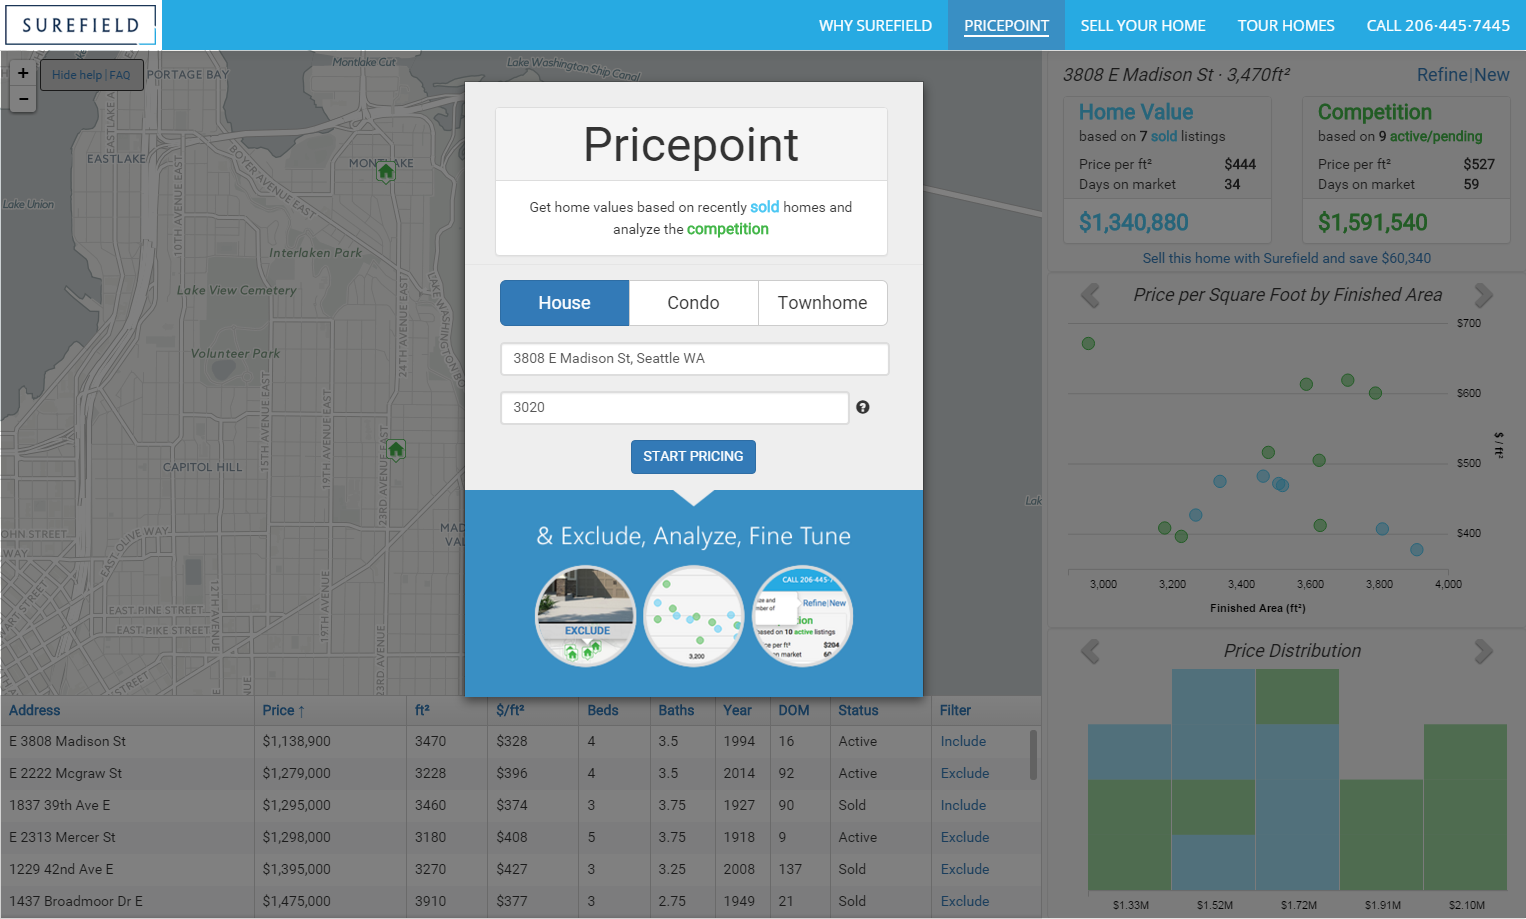 Surefield Pricepoint Home Pricing Tool